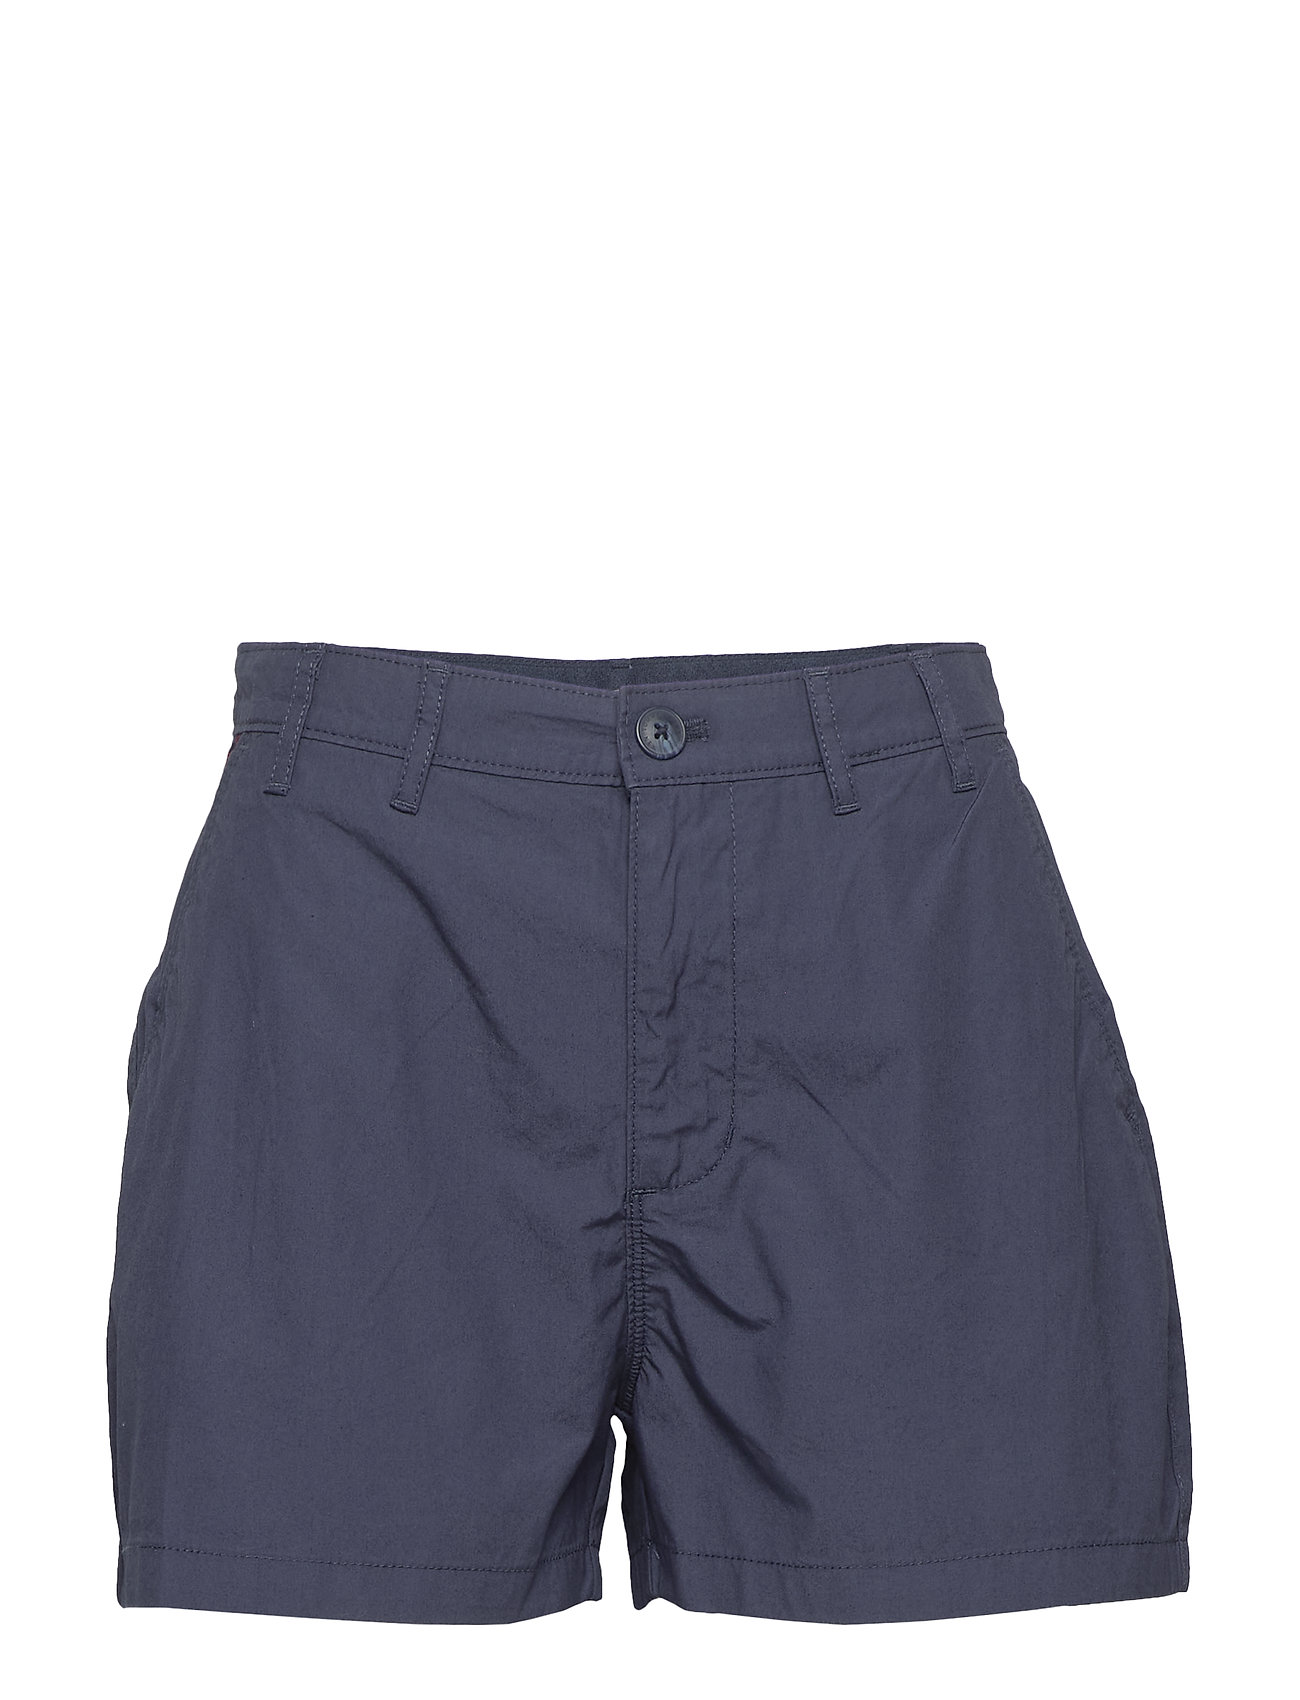 Image of Tjw Essential Chino Short Shorts Chino Shorts Blå Tommy Jeans (3406276775)